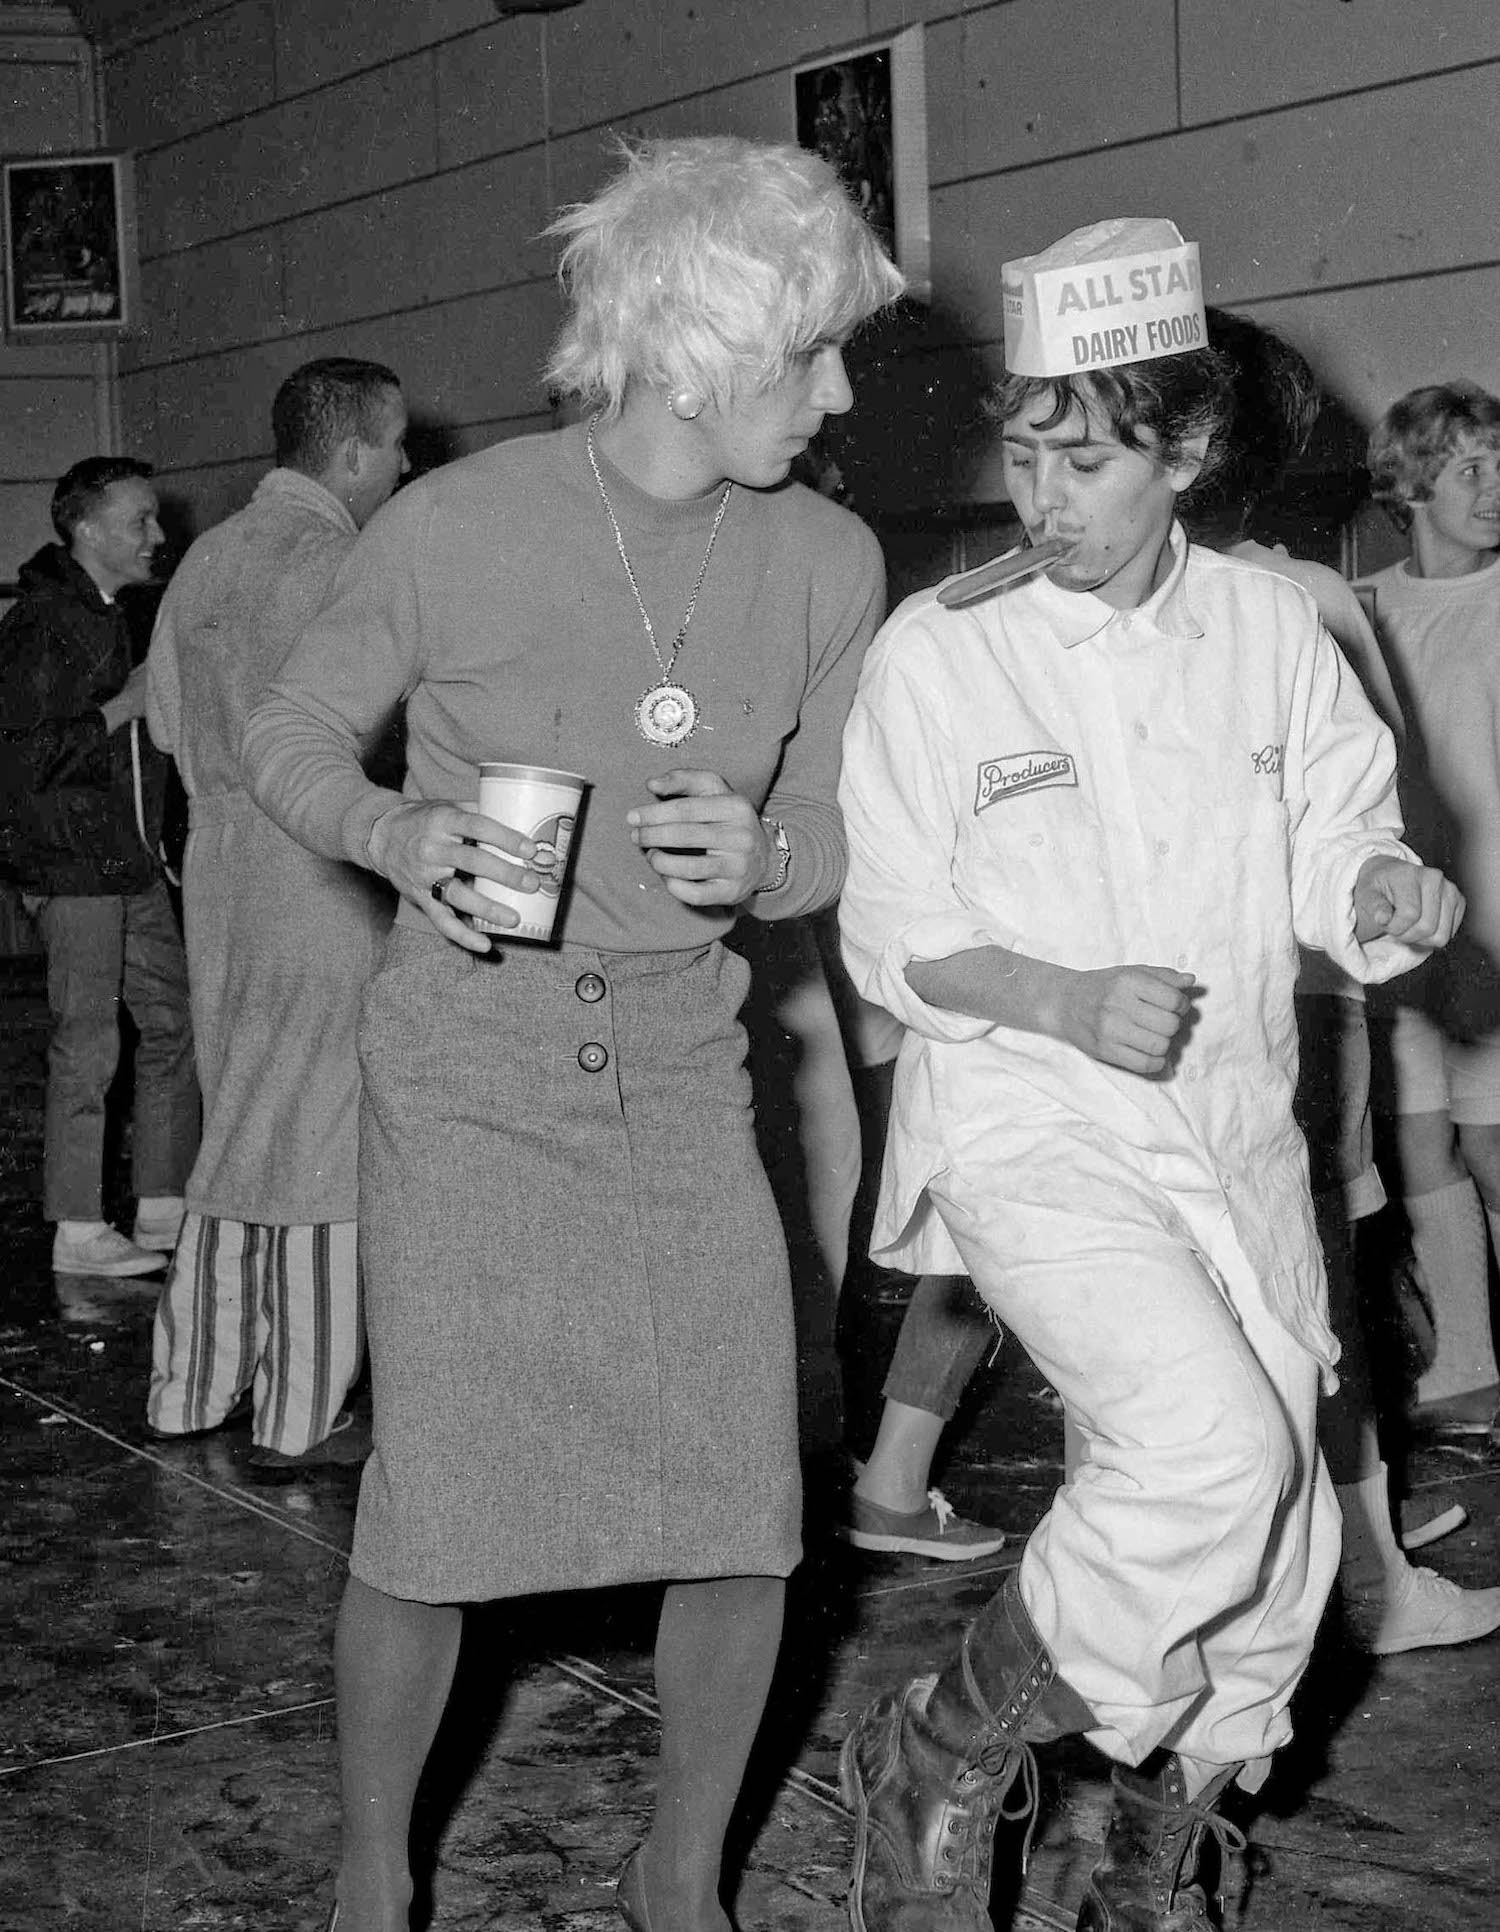 Fresno State College, Dec 13, 1963, costume party, Richard & Rita